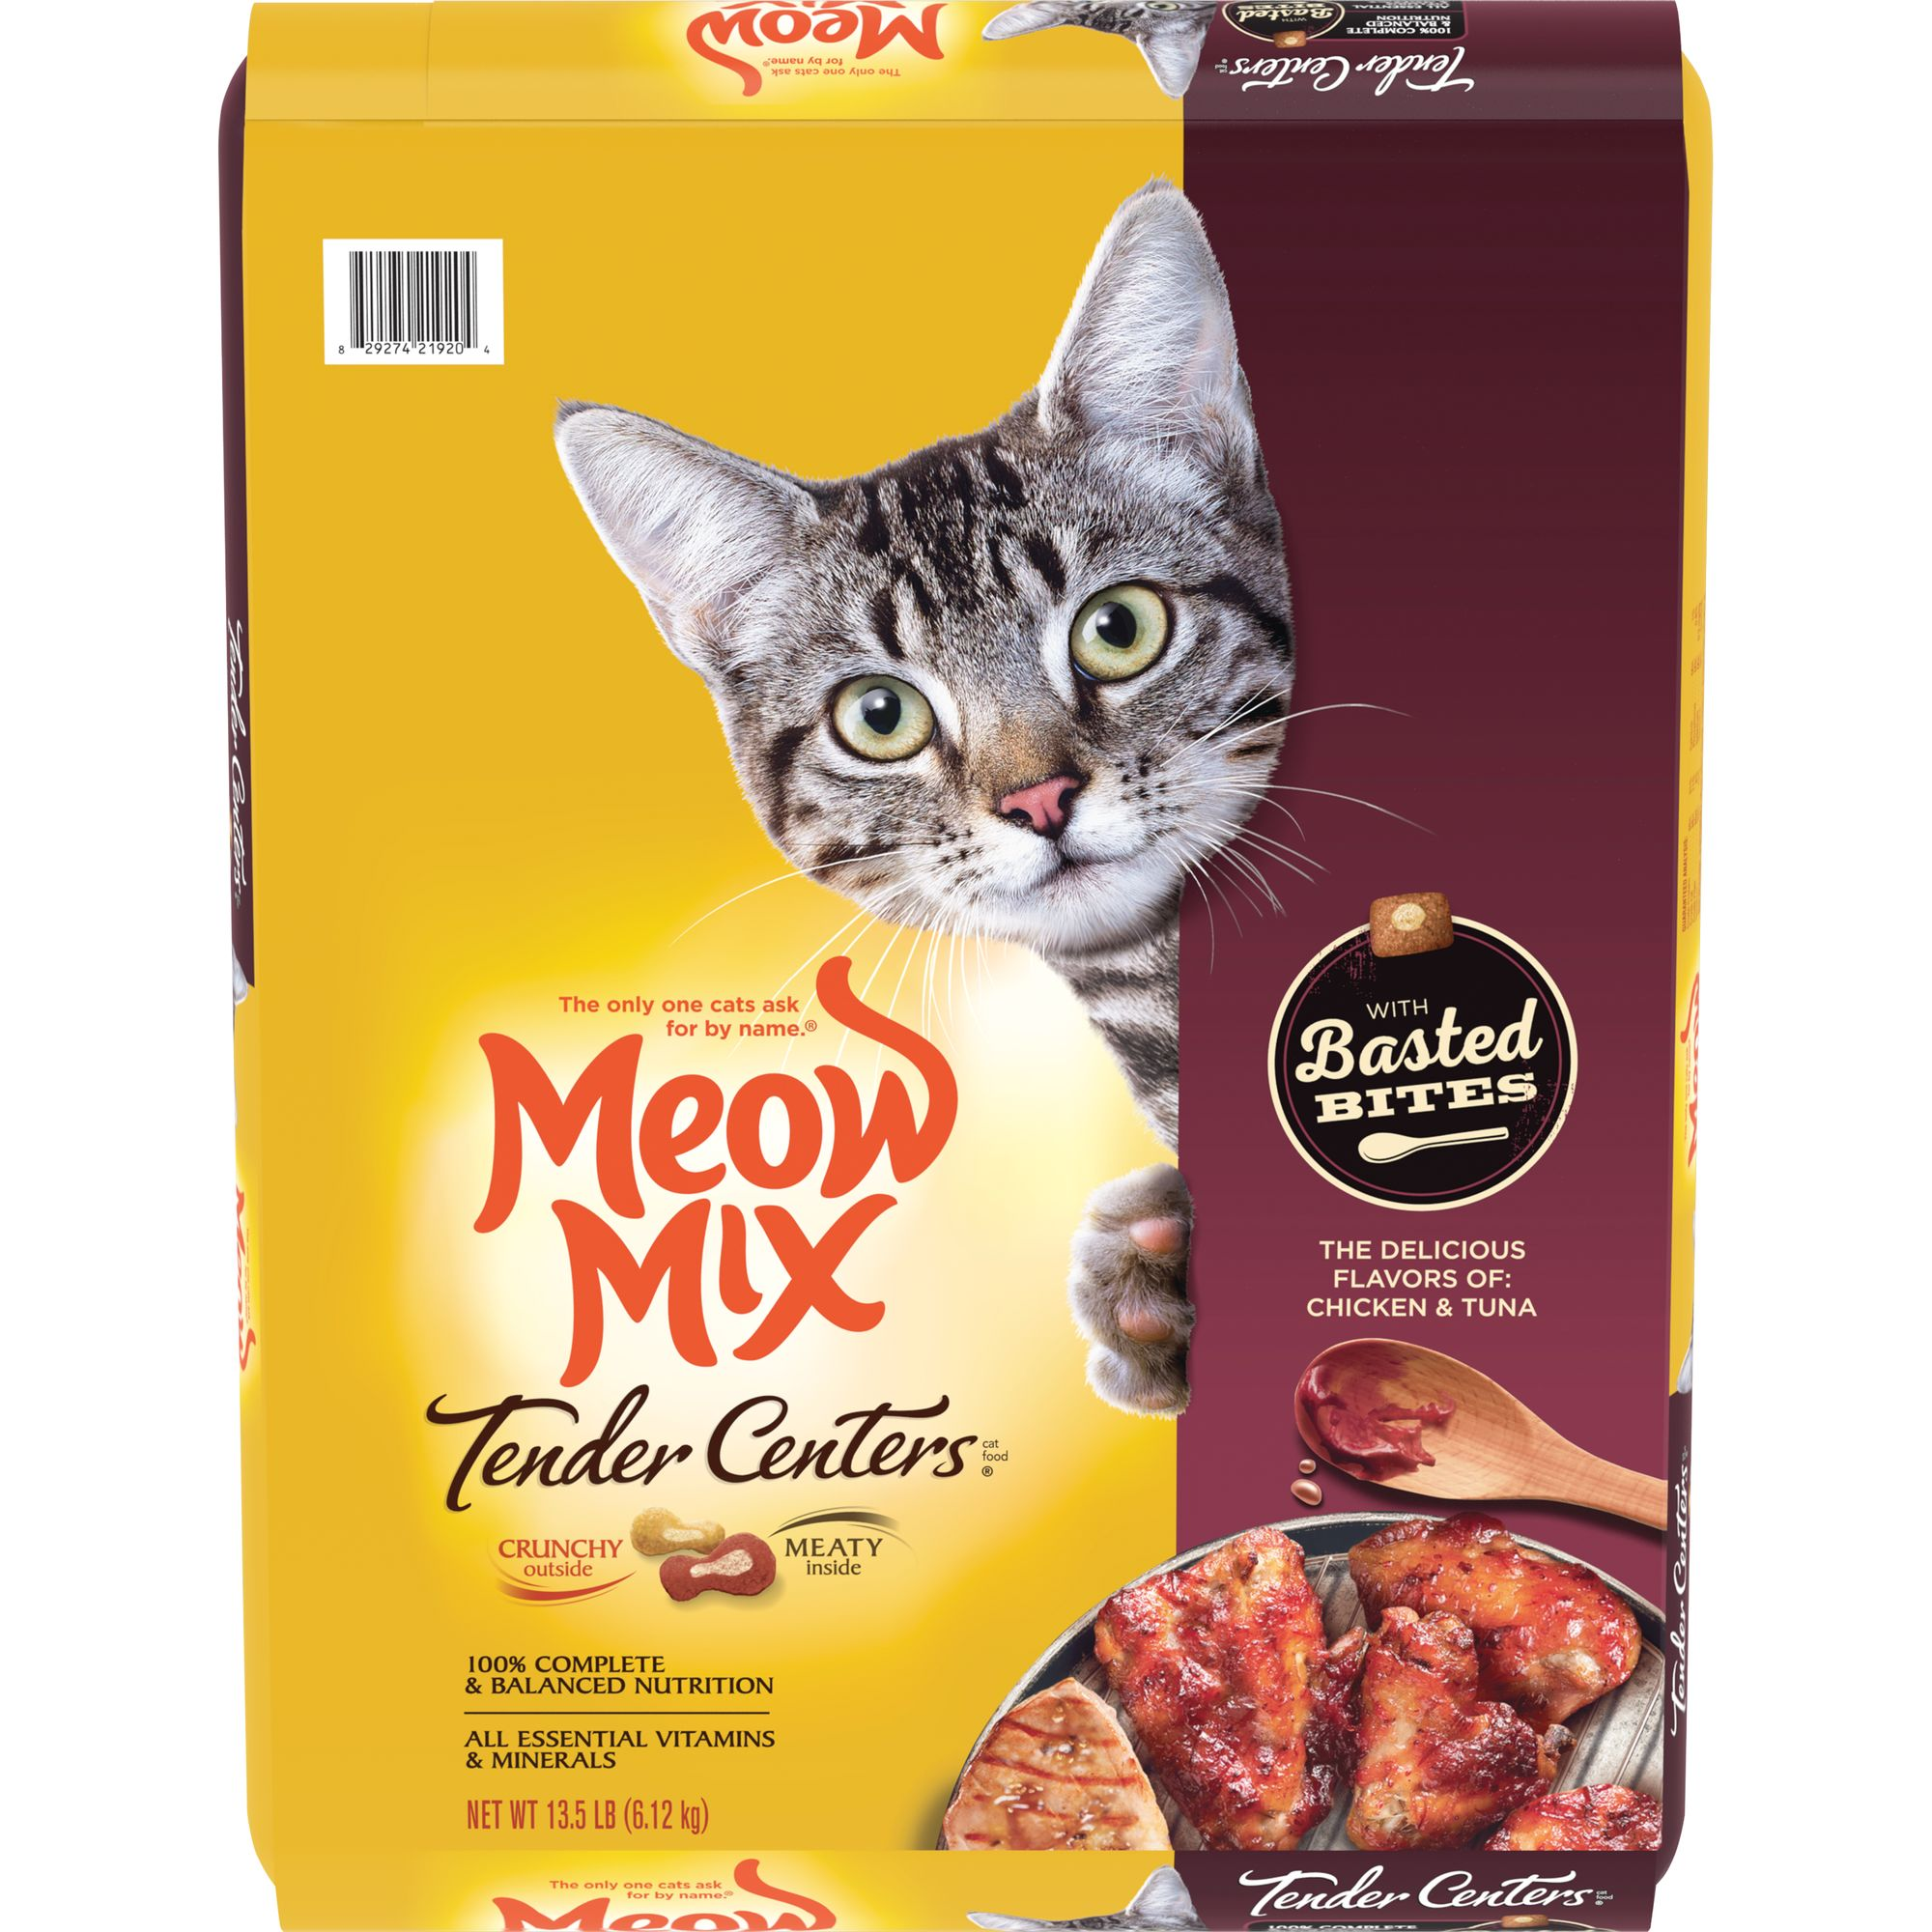 Meow Mix Tender Centers Basted Bites With Chicken & Tuna Dry Cat Food, 13.5 lb